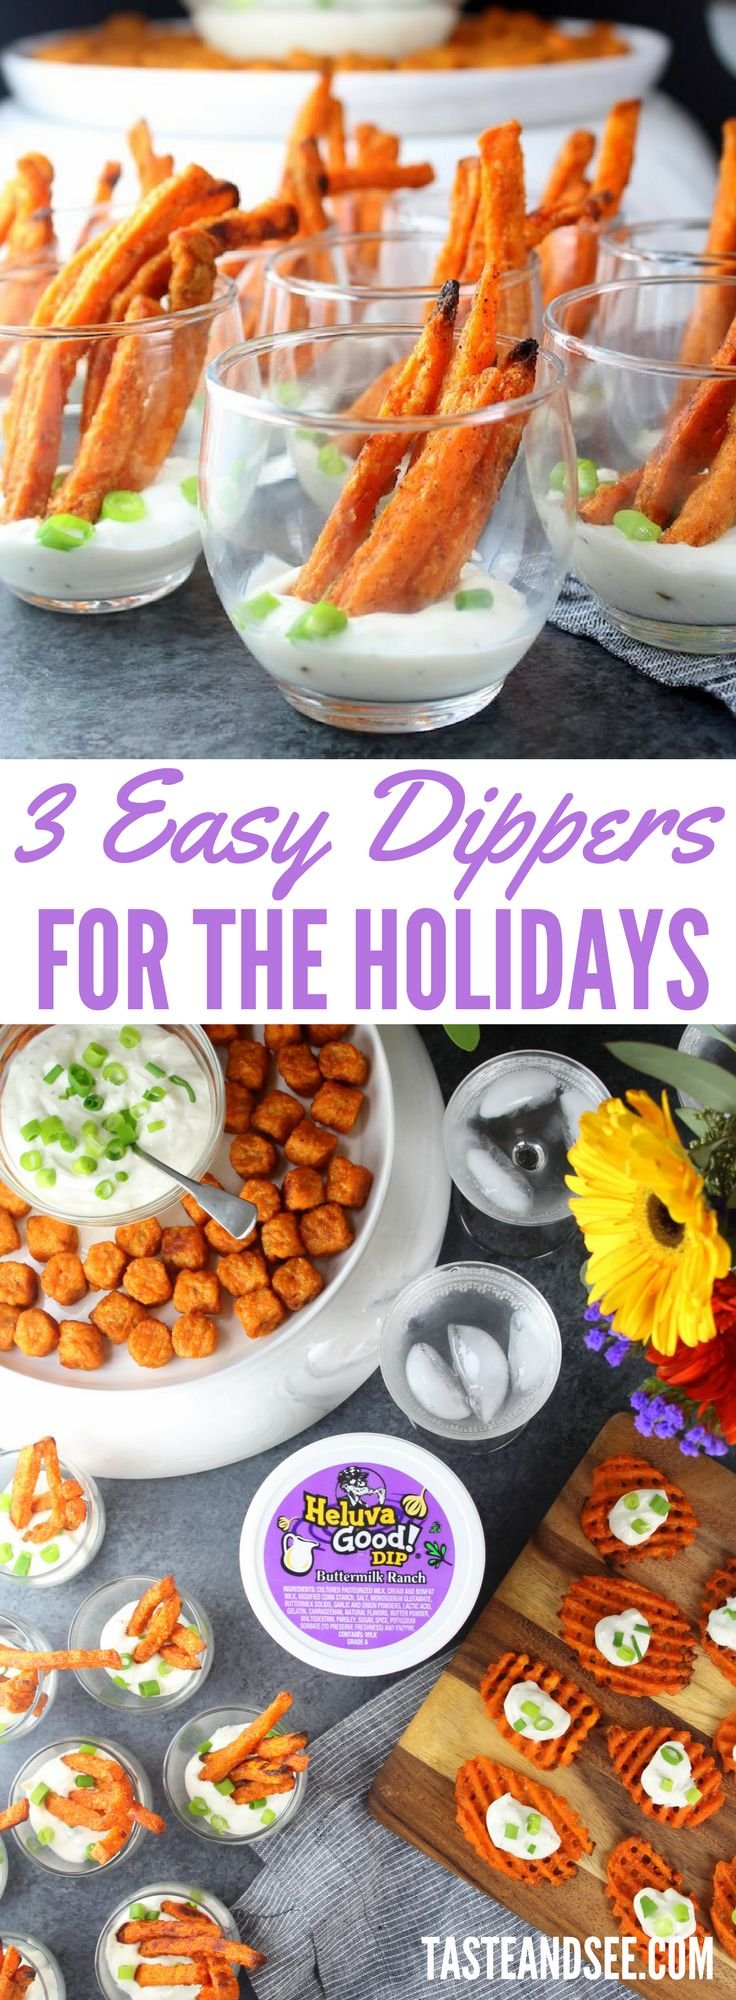 Make your holidays delicious & stress-free with these 3 Easy Dippers For The Holidays - #Sponsored by @heluvagood !  Sweet potatoes three ways, with Buttermilk Ranch for the ultimate holiday appetizers. #chipsdipsandtips  #IC  https://tasteandsee.com